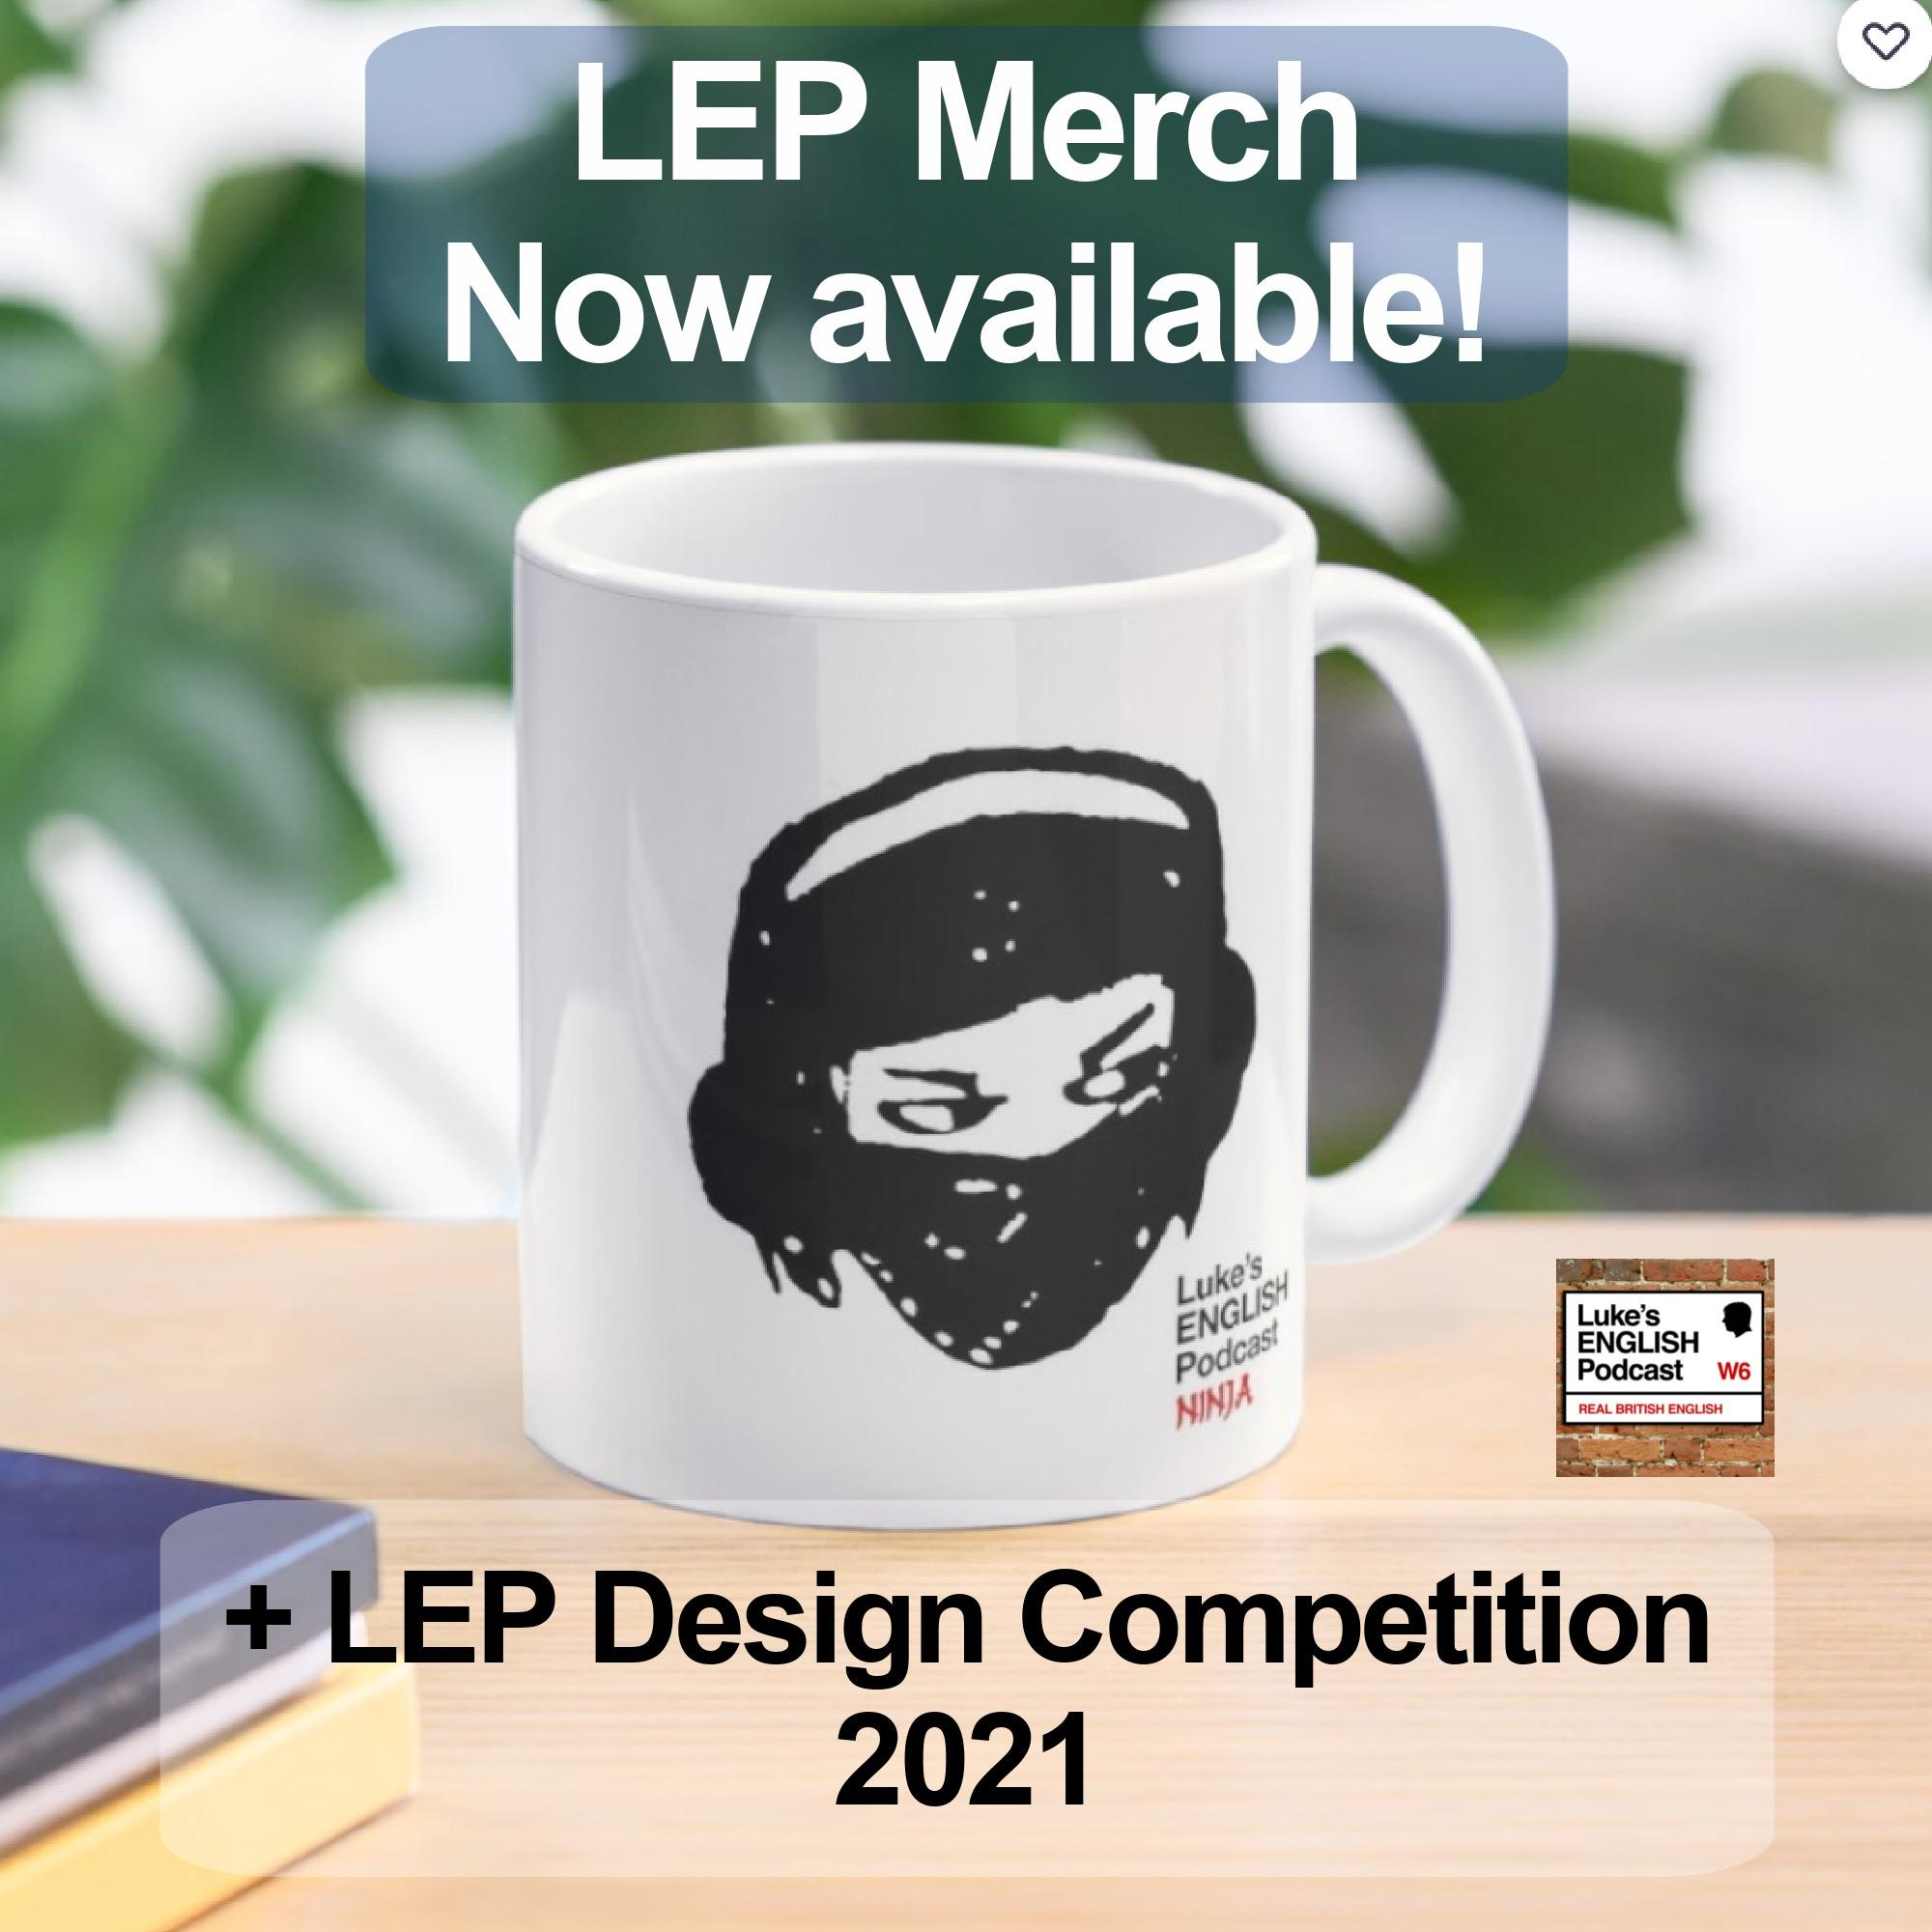 742. NEW LEP T-SHIRTS & MERCH + LEP DESIGN COMPETITION 2021 with James